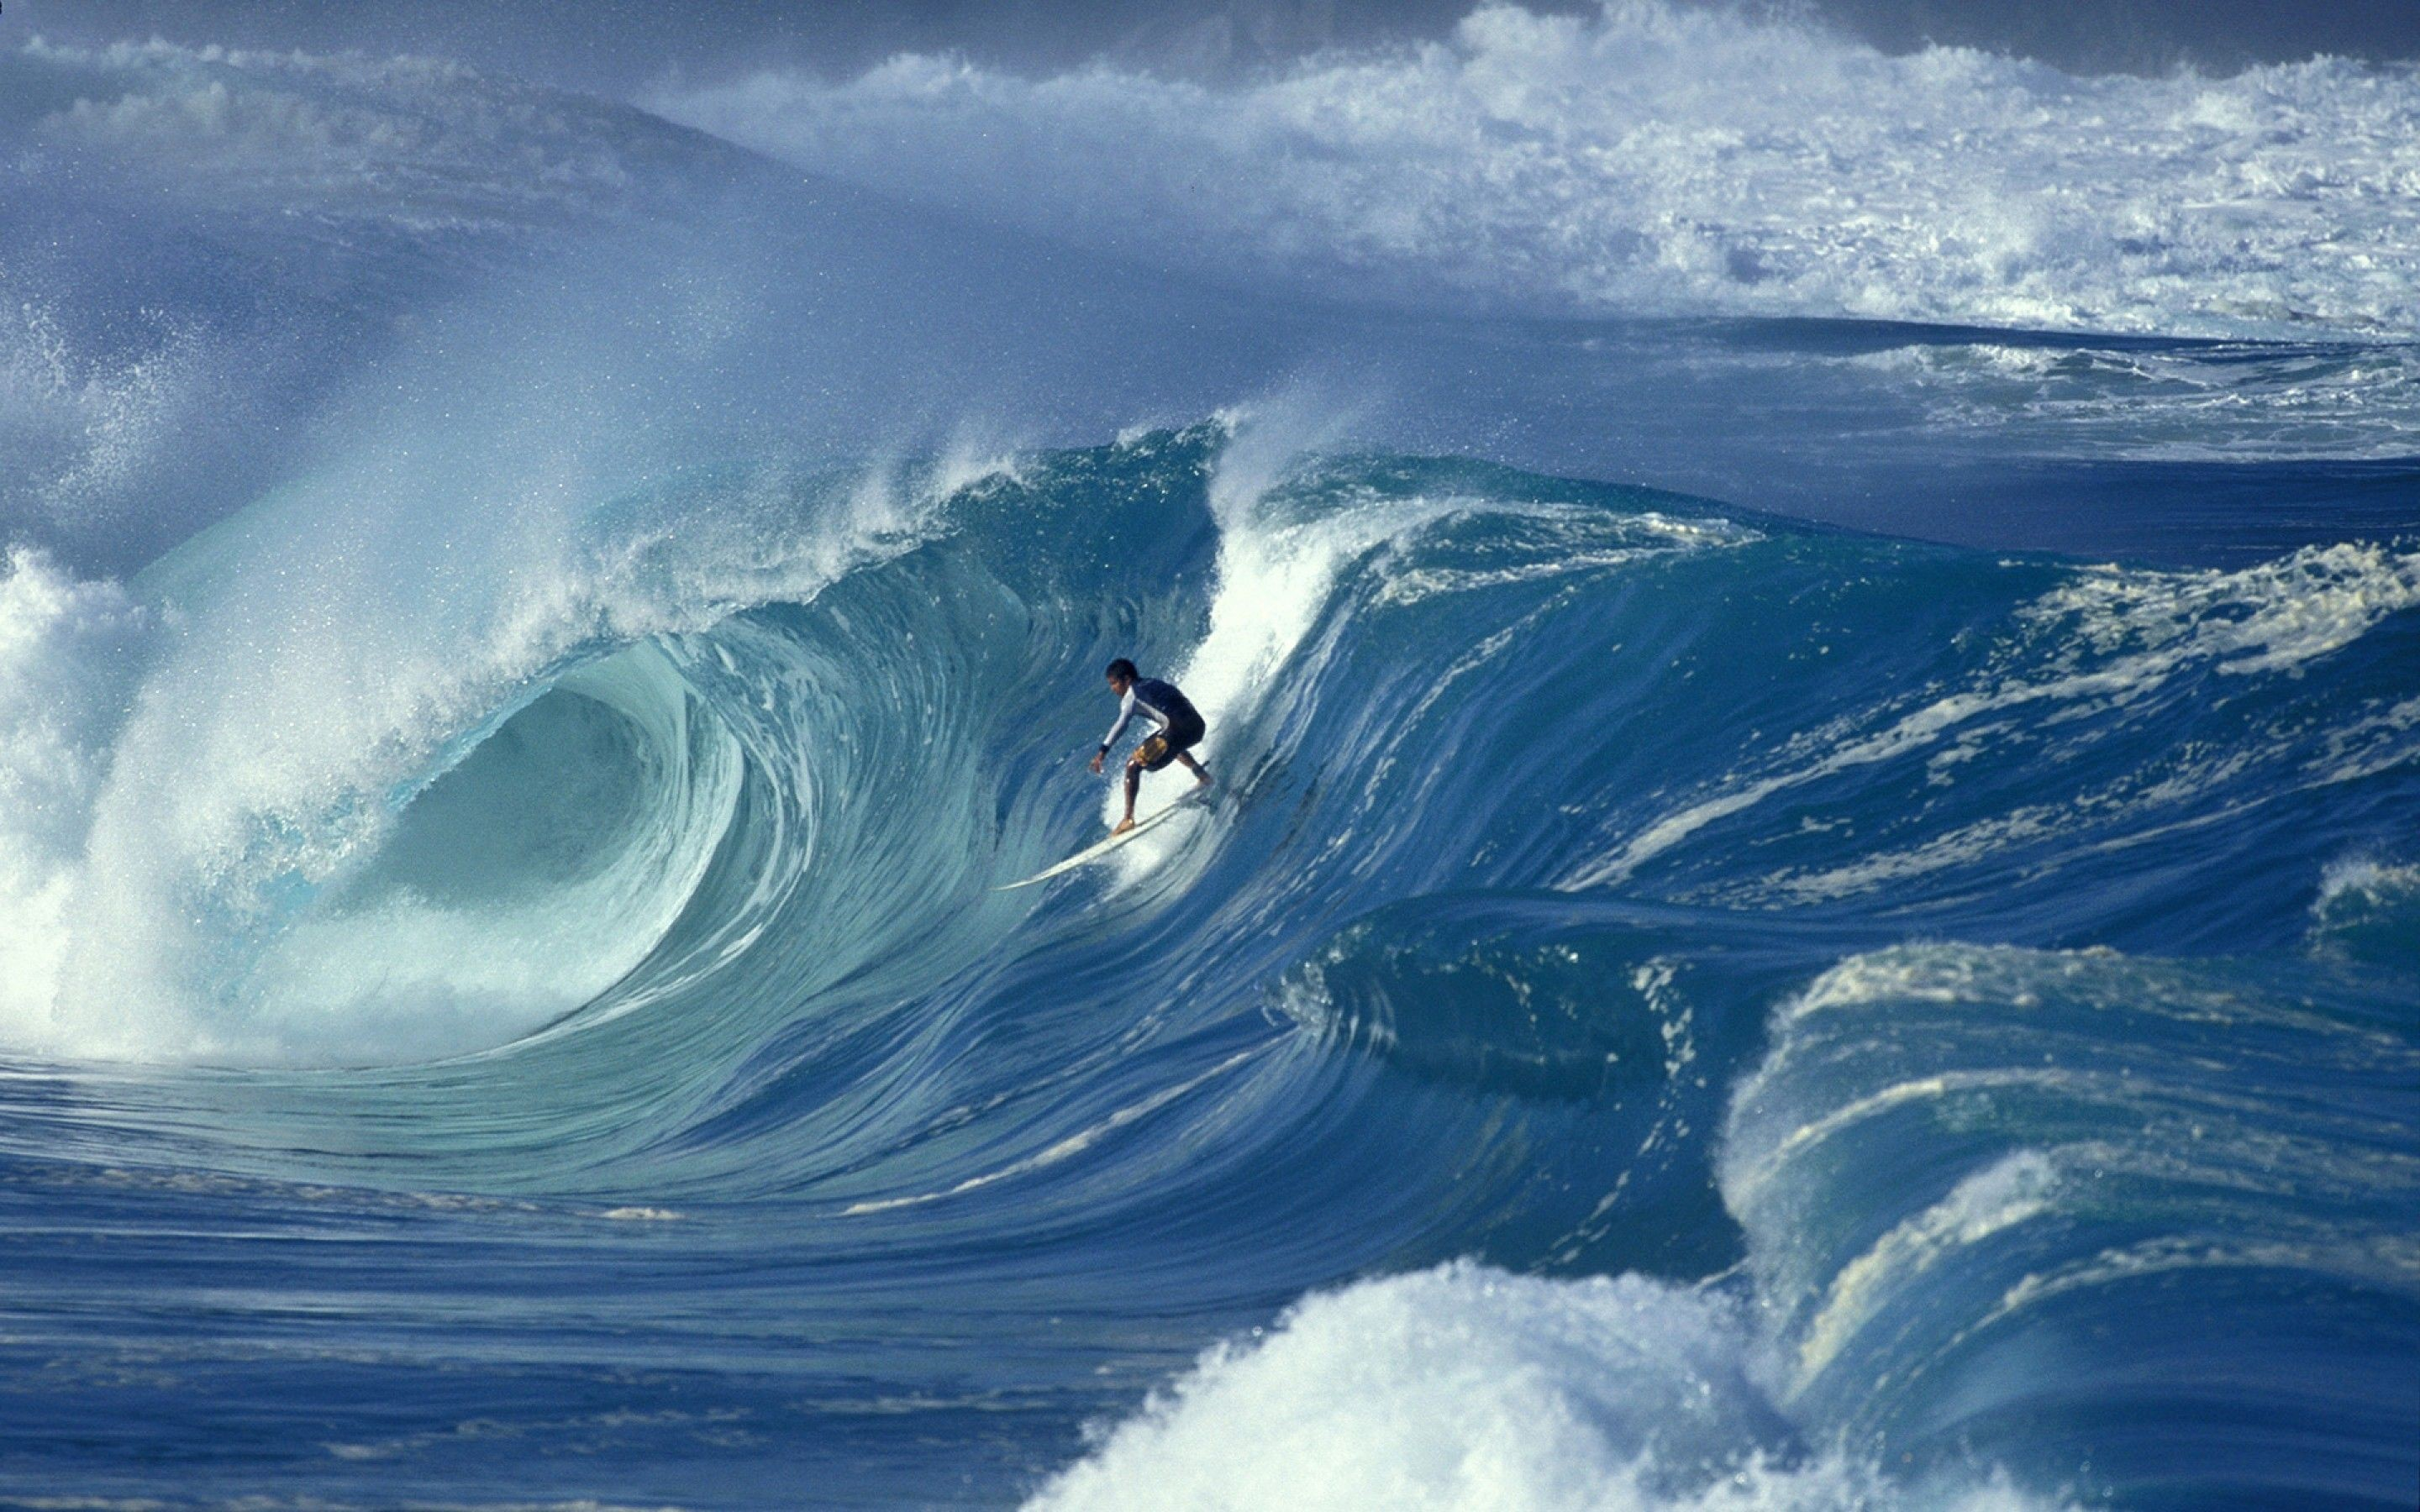 Surfing – The big wave